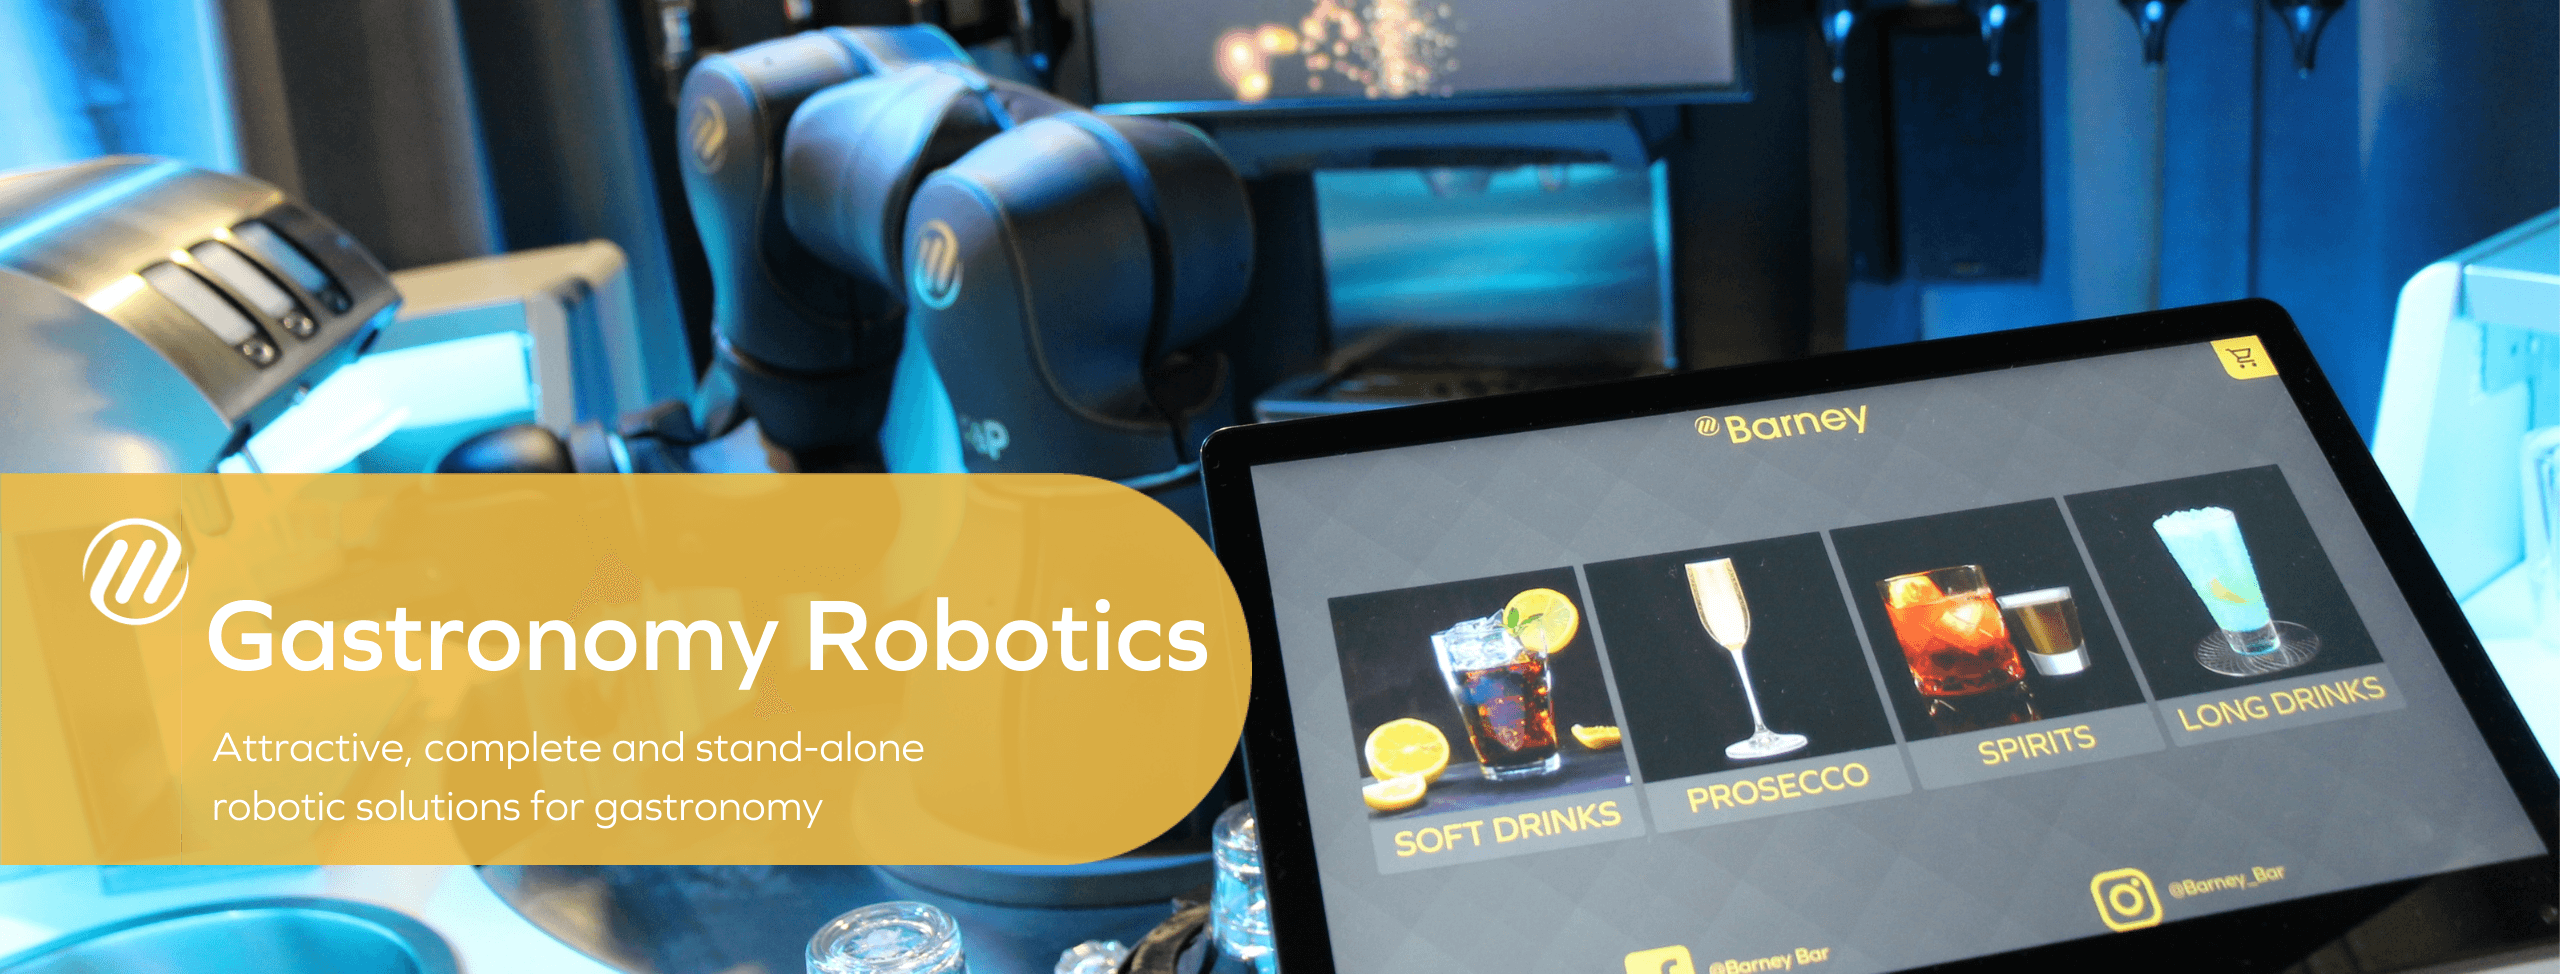 Gastronomy Robotics - Attractive, complete and stand-alone robotic solutions for gastronomy